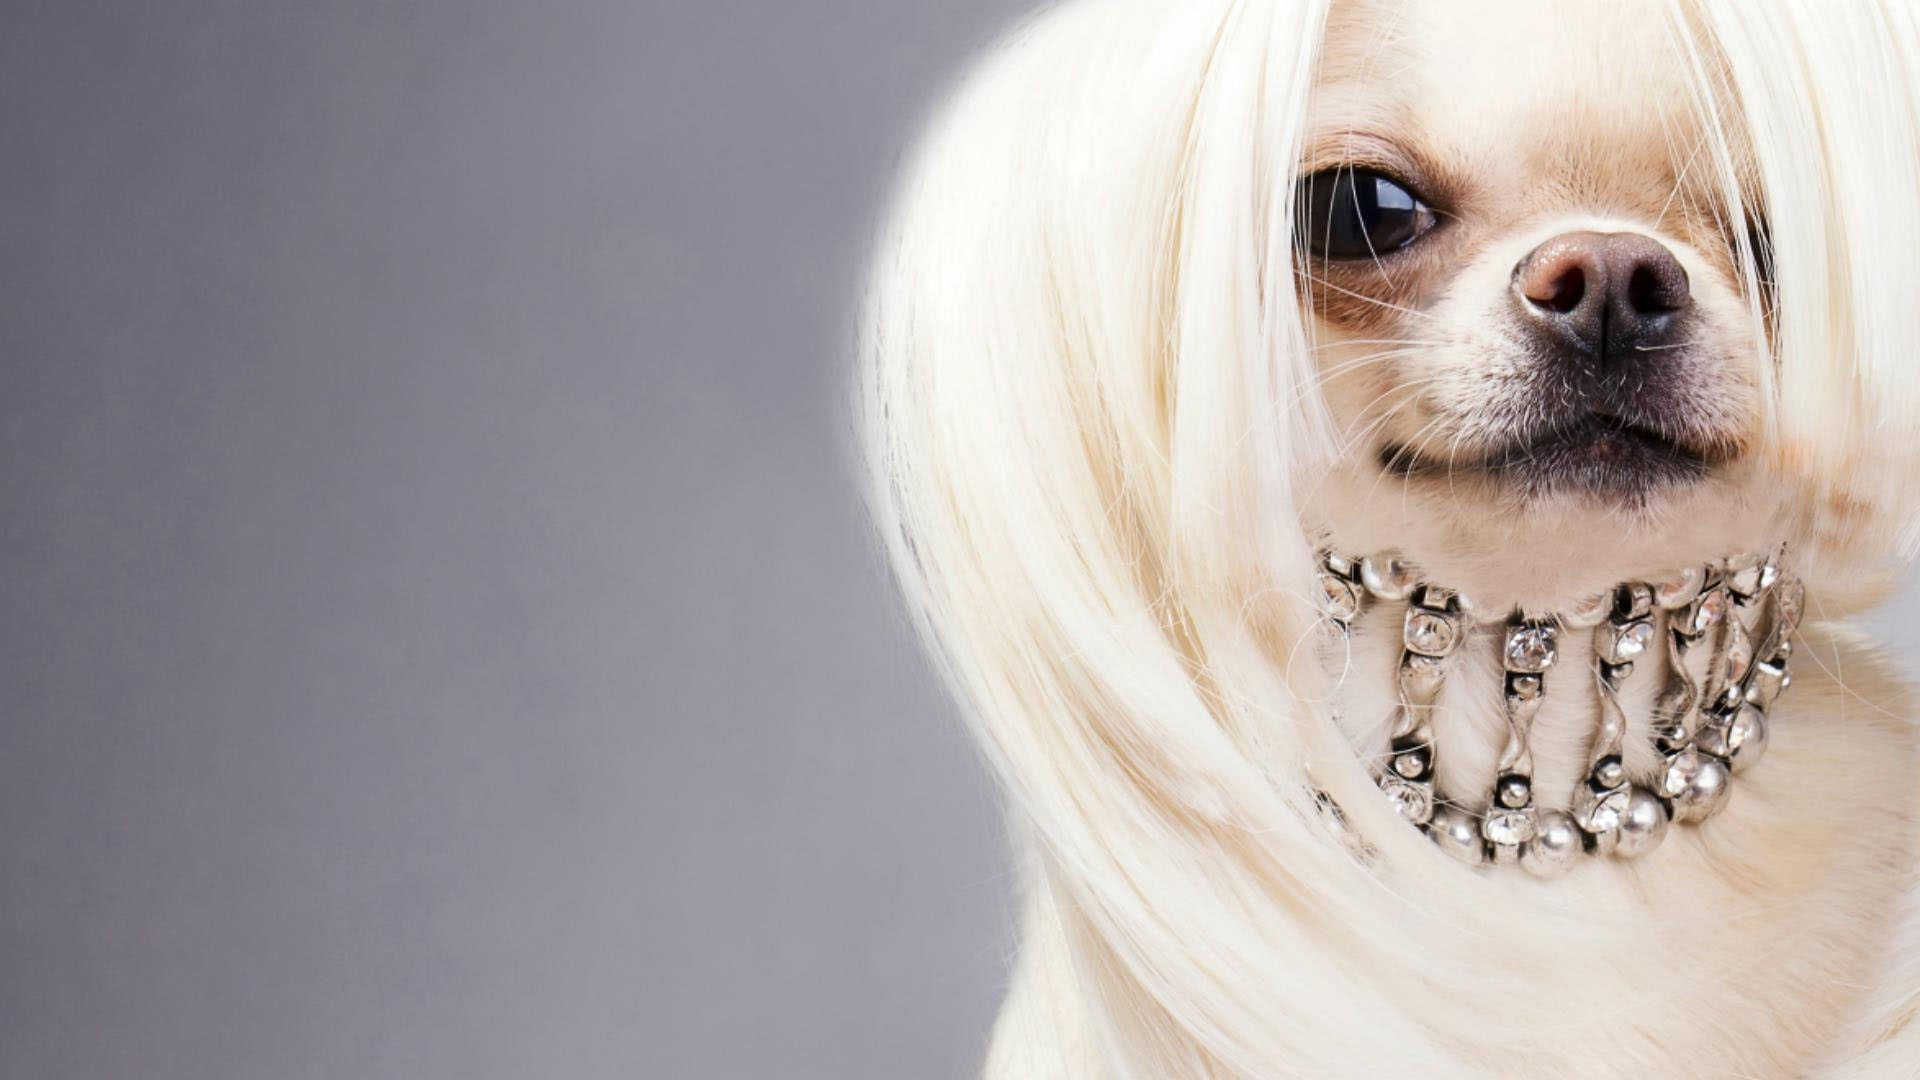 Cute Anime Dogs Wallpaper Chinese Crested Dog Wallpapers Backgrounds